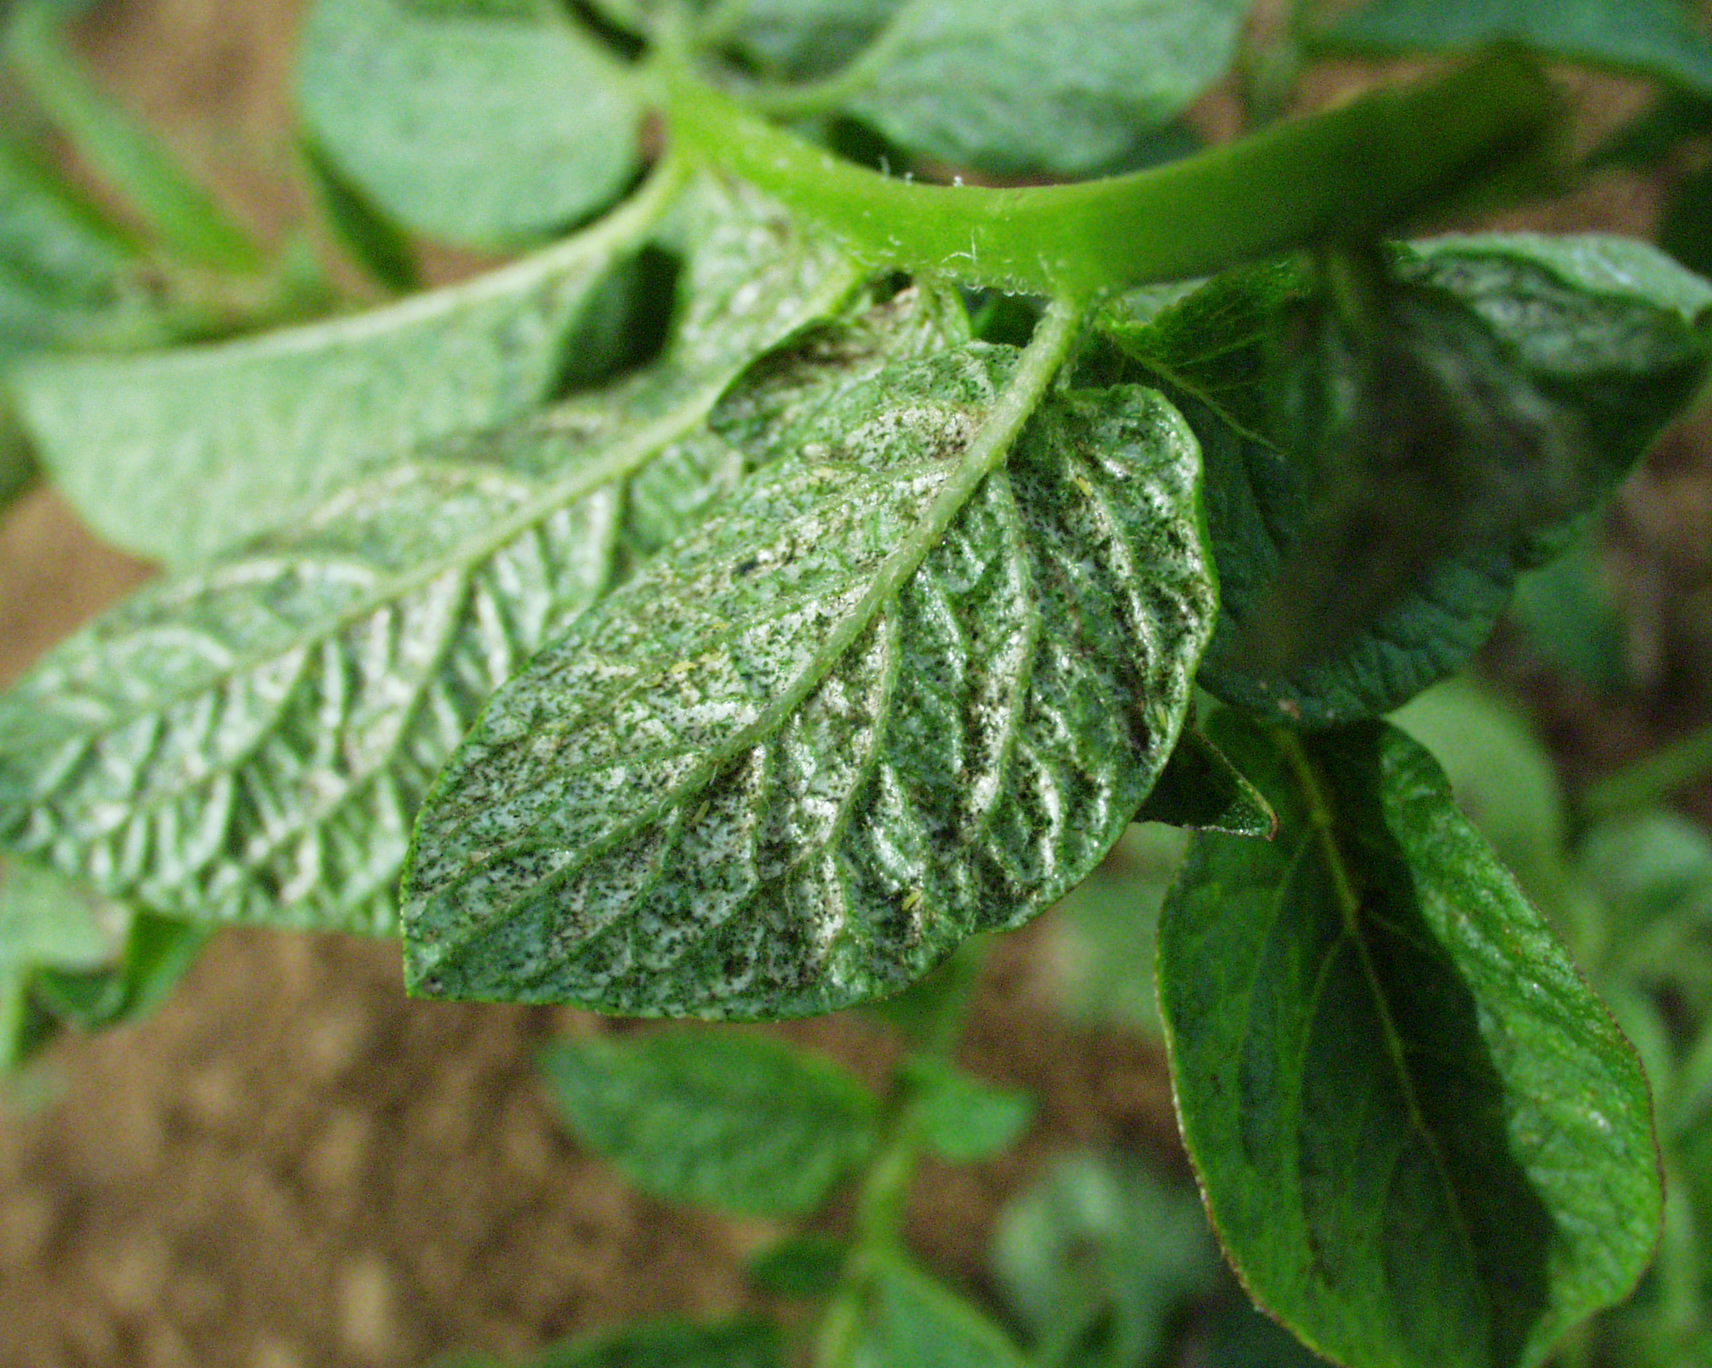 Thrips Potato Pest In Indonesia And Western Australia Agriculture And Food